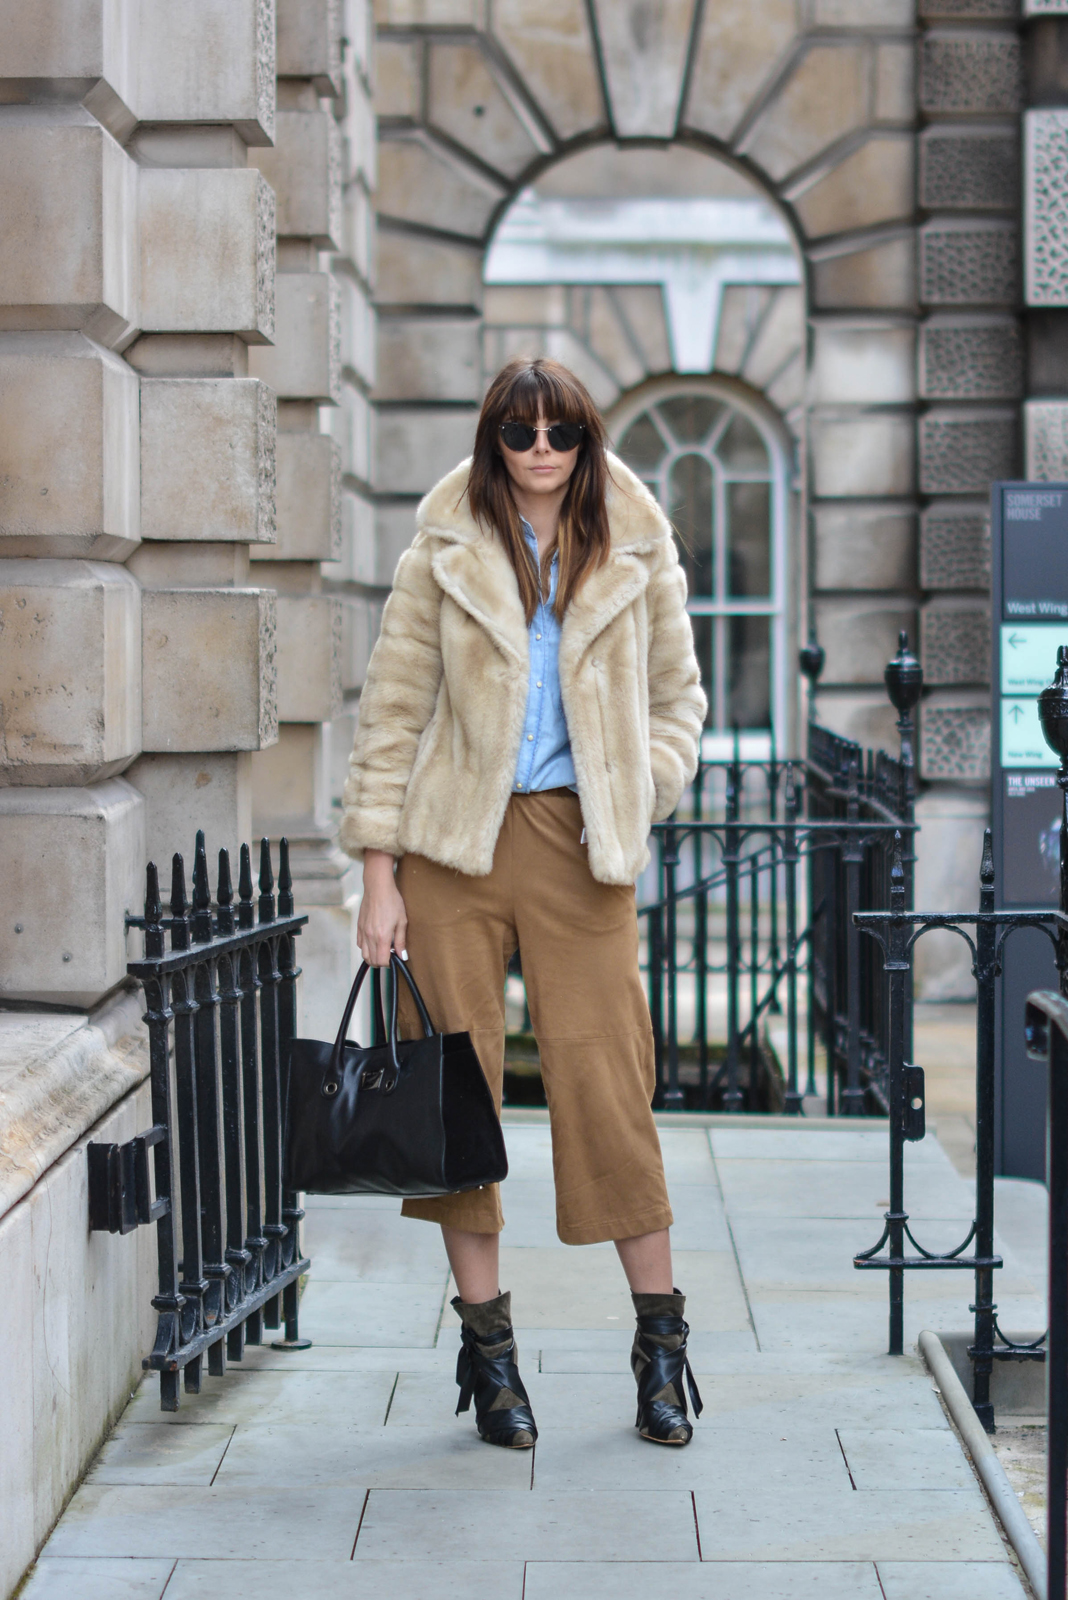 EJSTYLE - Emma Hill, London Fashion Week, LFW AW15, street style, 70's style, Denim shirt, suede culottes, isabel marant boots, jimmy choo bag, vintage fur coat